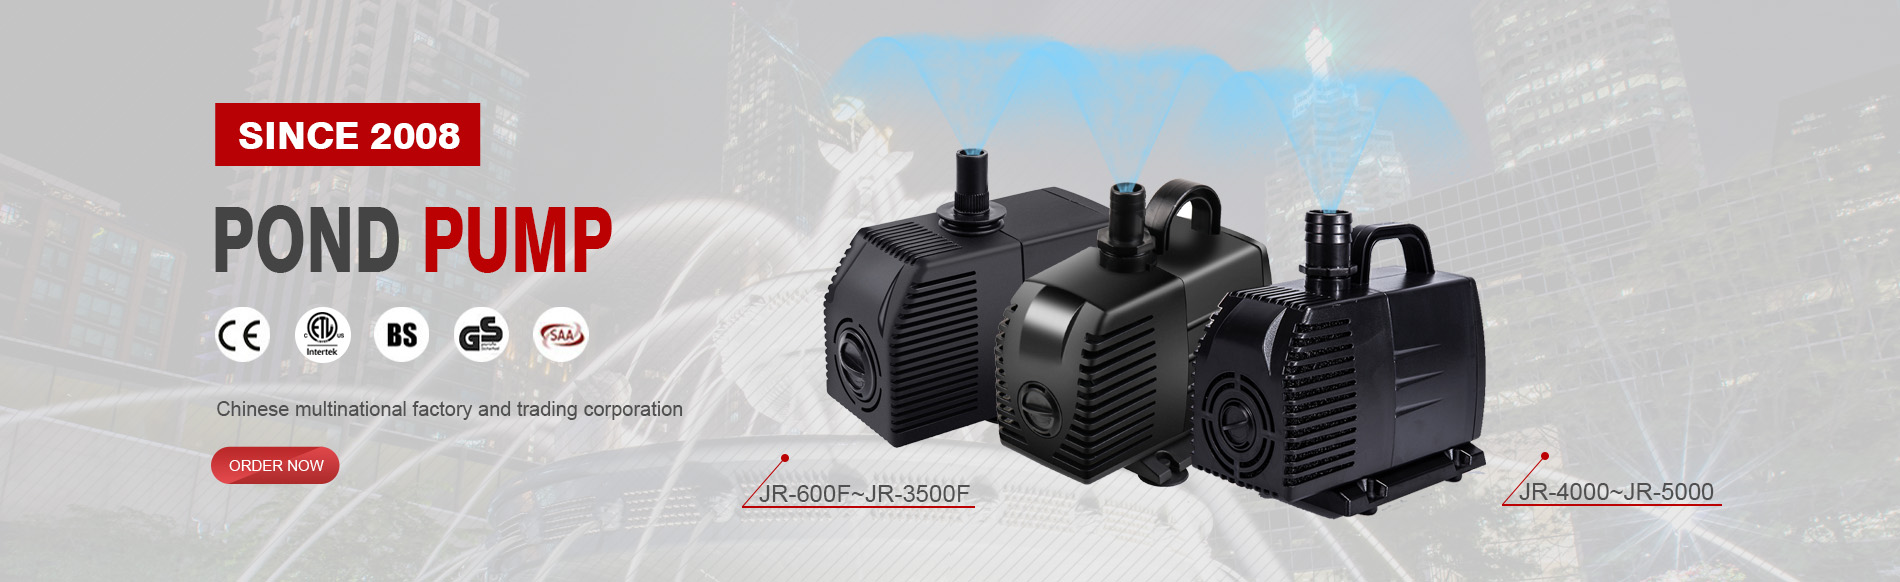 pond pump supplier